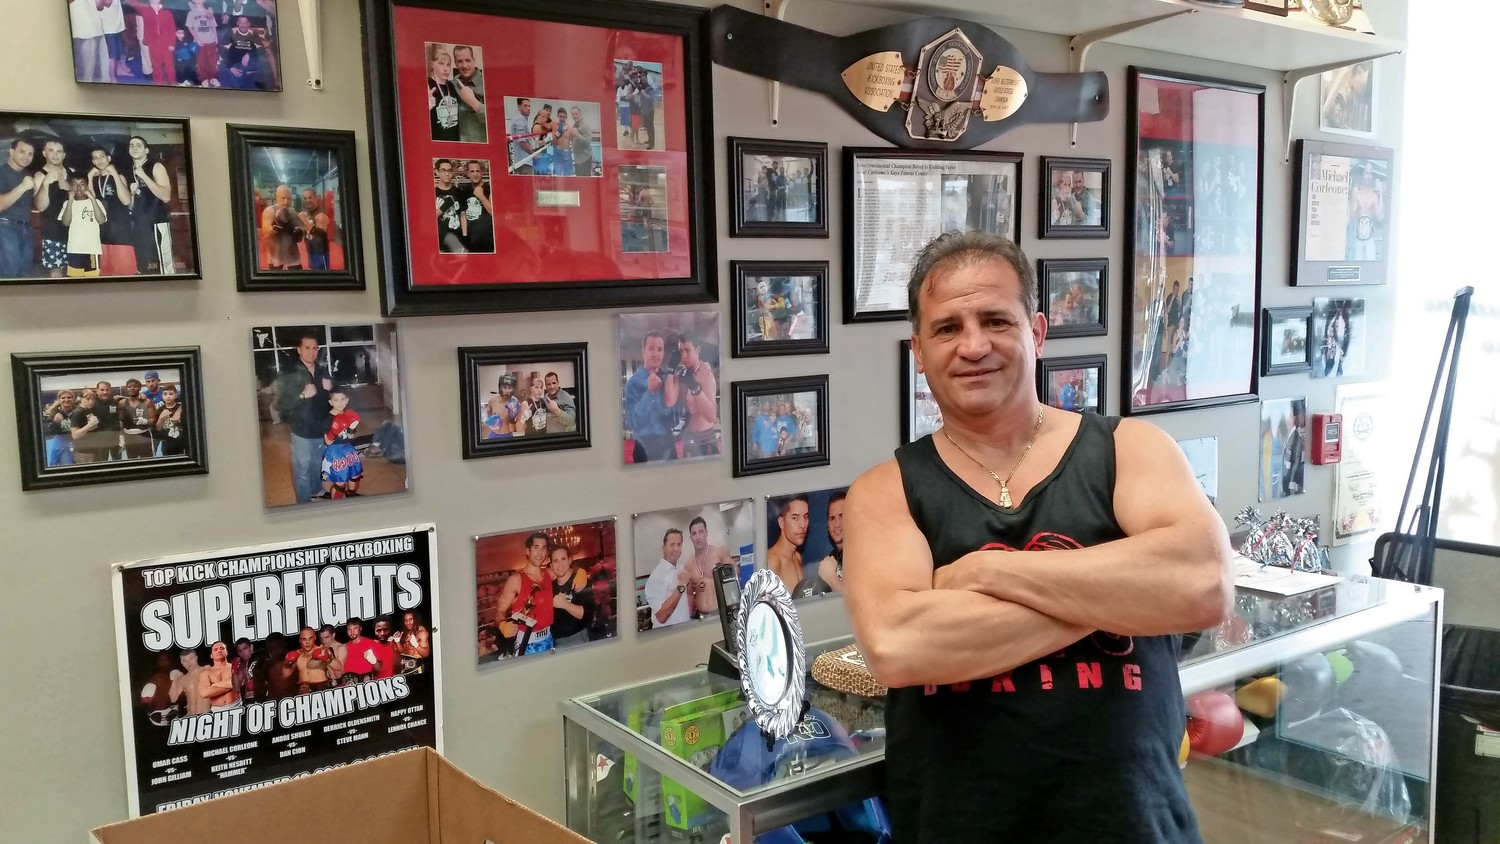 Longtime boxer and kickboxer Michael Corleone was excited to open his new gym, Kayo Boxing, in West Hempstead.